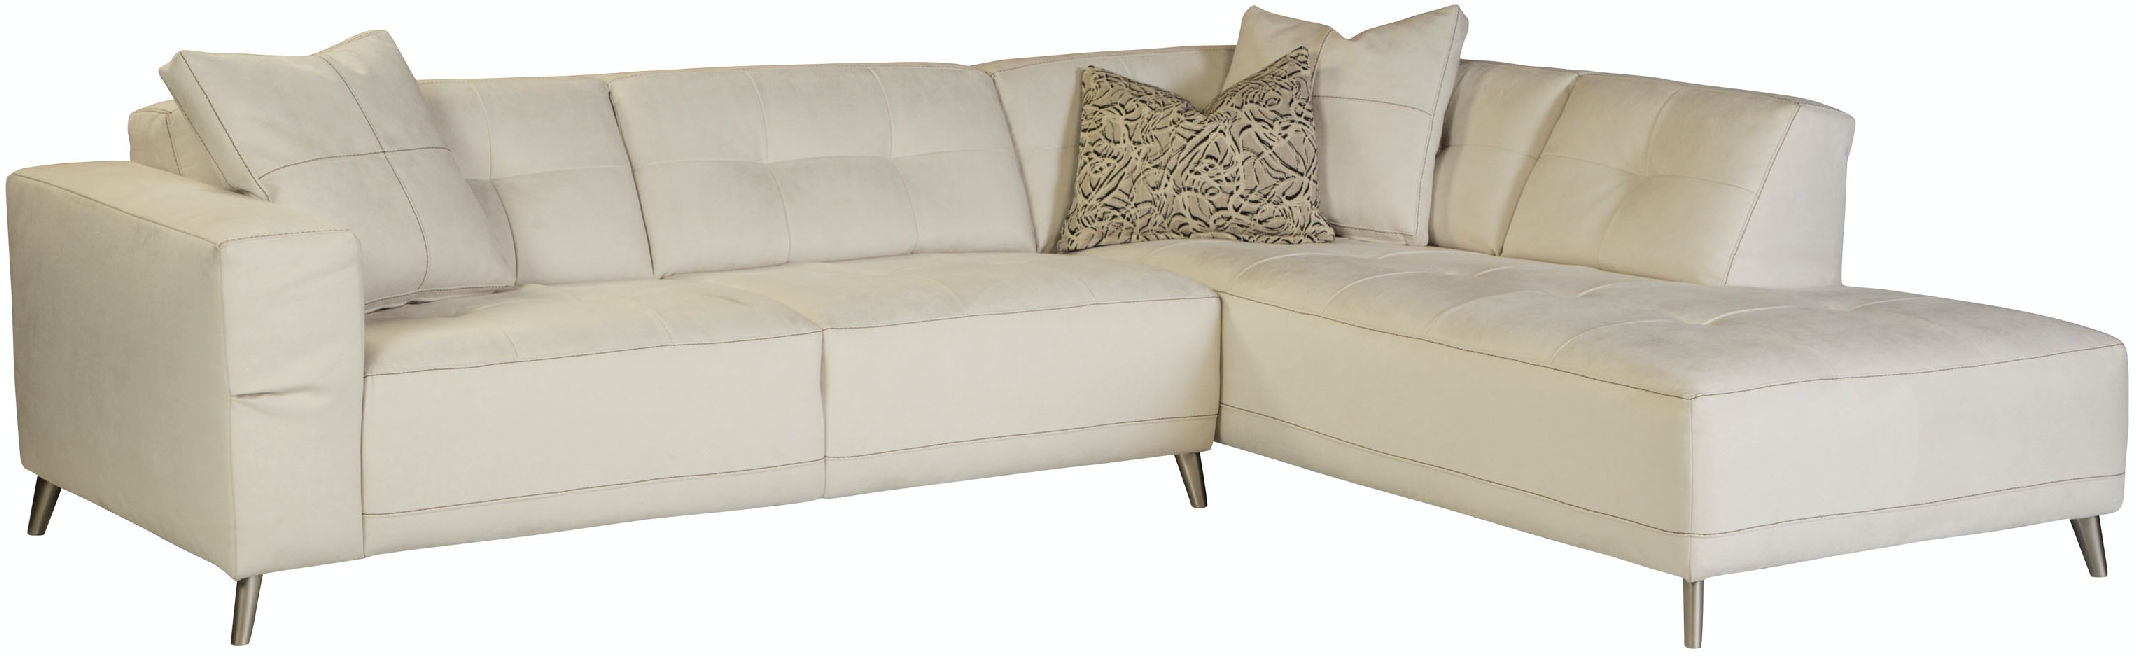 Jonathan Louis International Living Room Liam Sectional